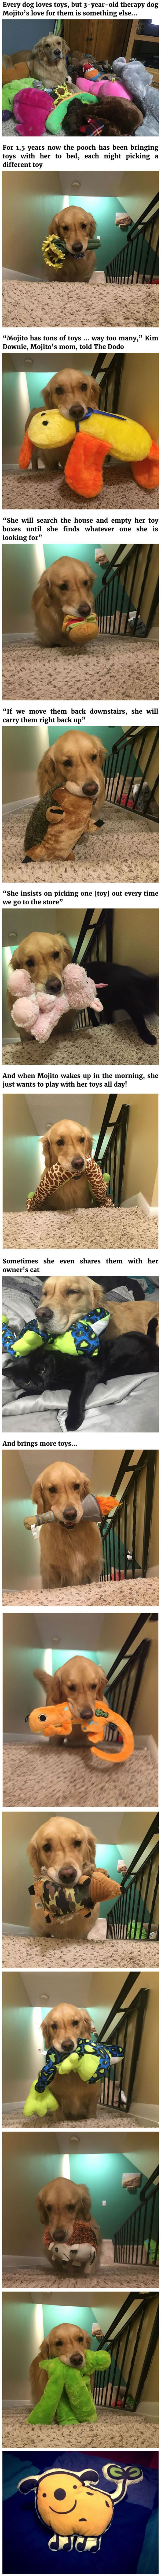 Therapy Dog Mojito Takes A Different Toy To Bed Each Night - 9GAG